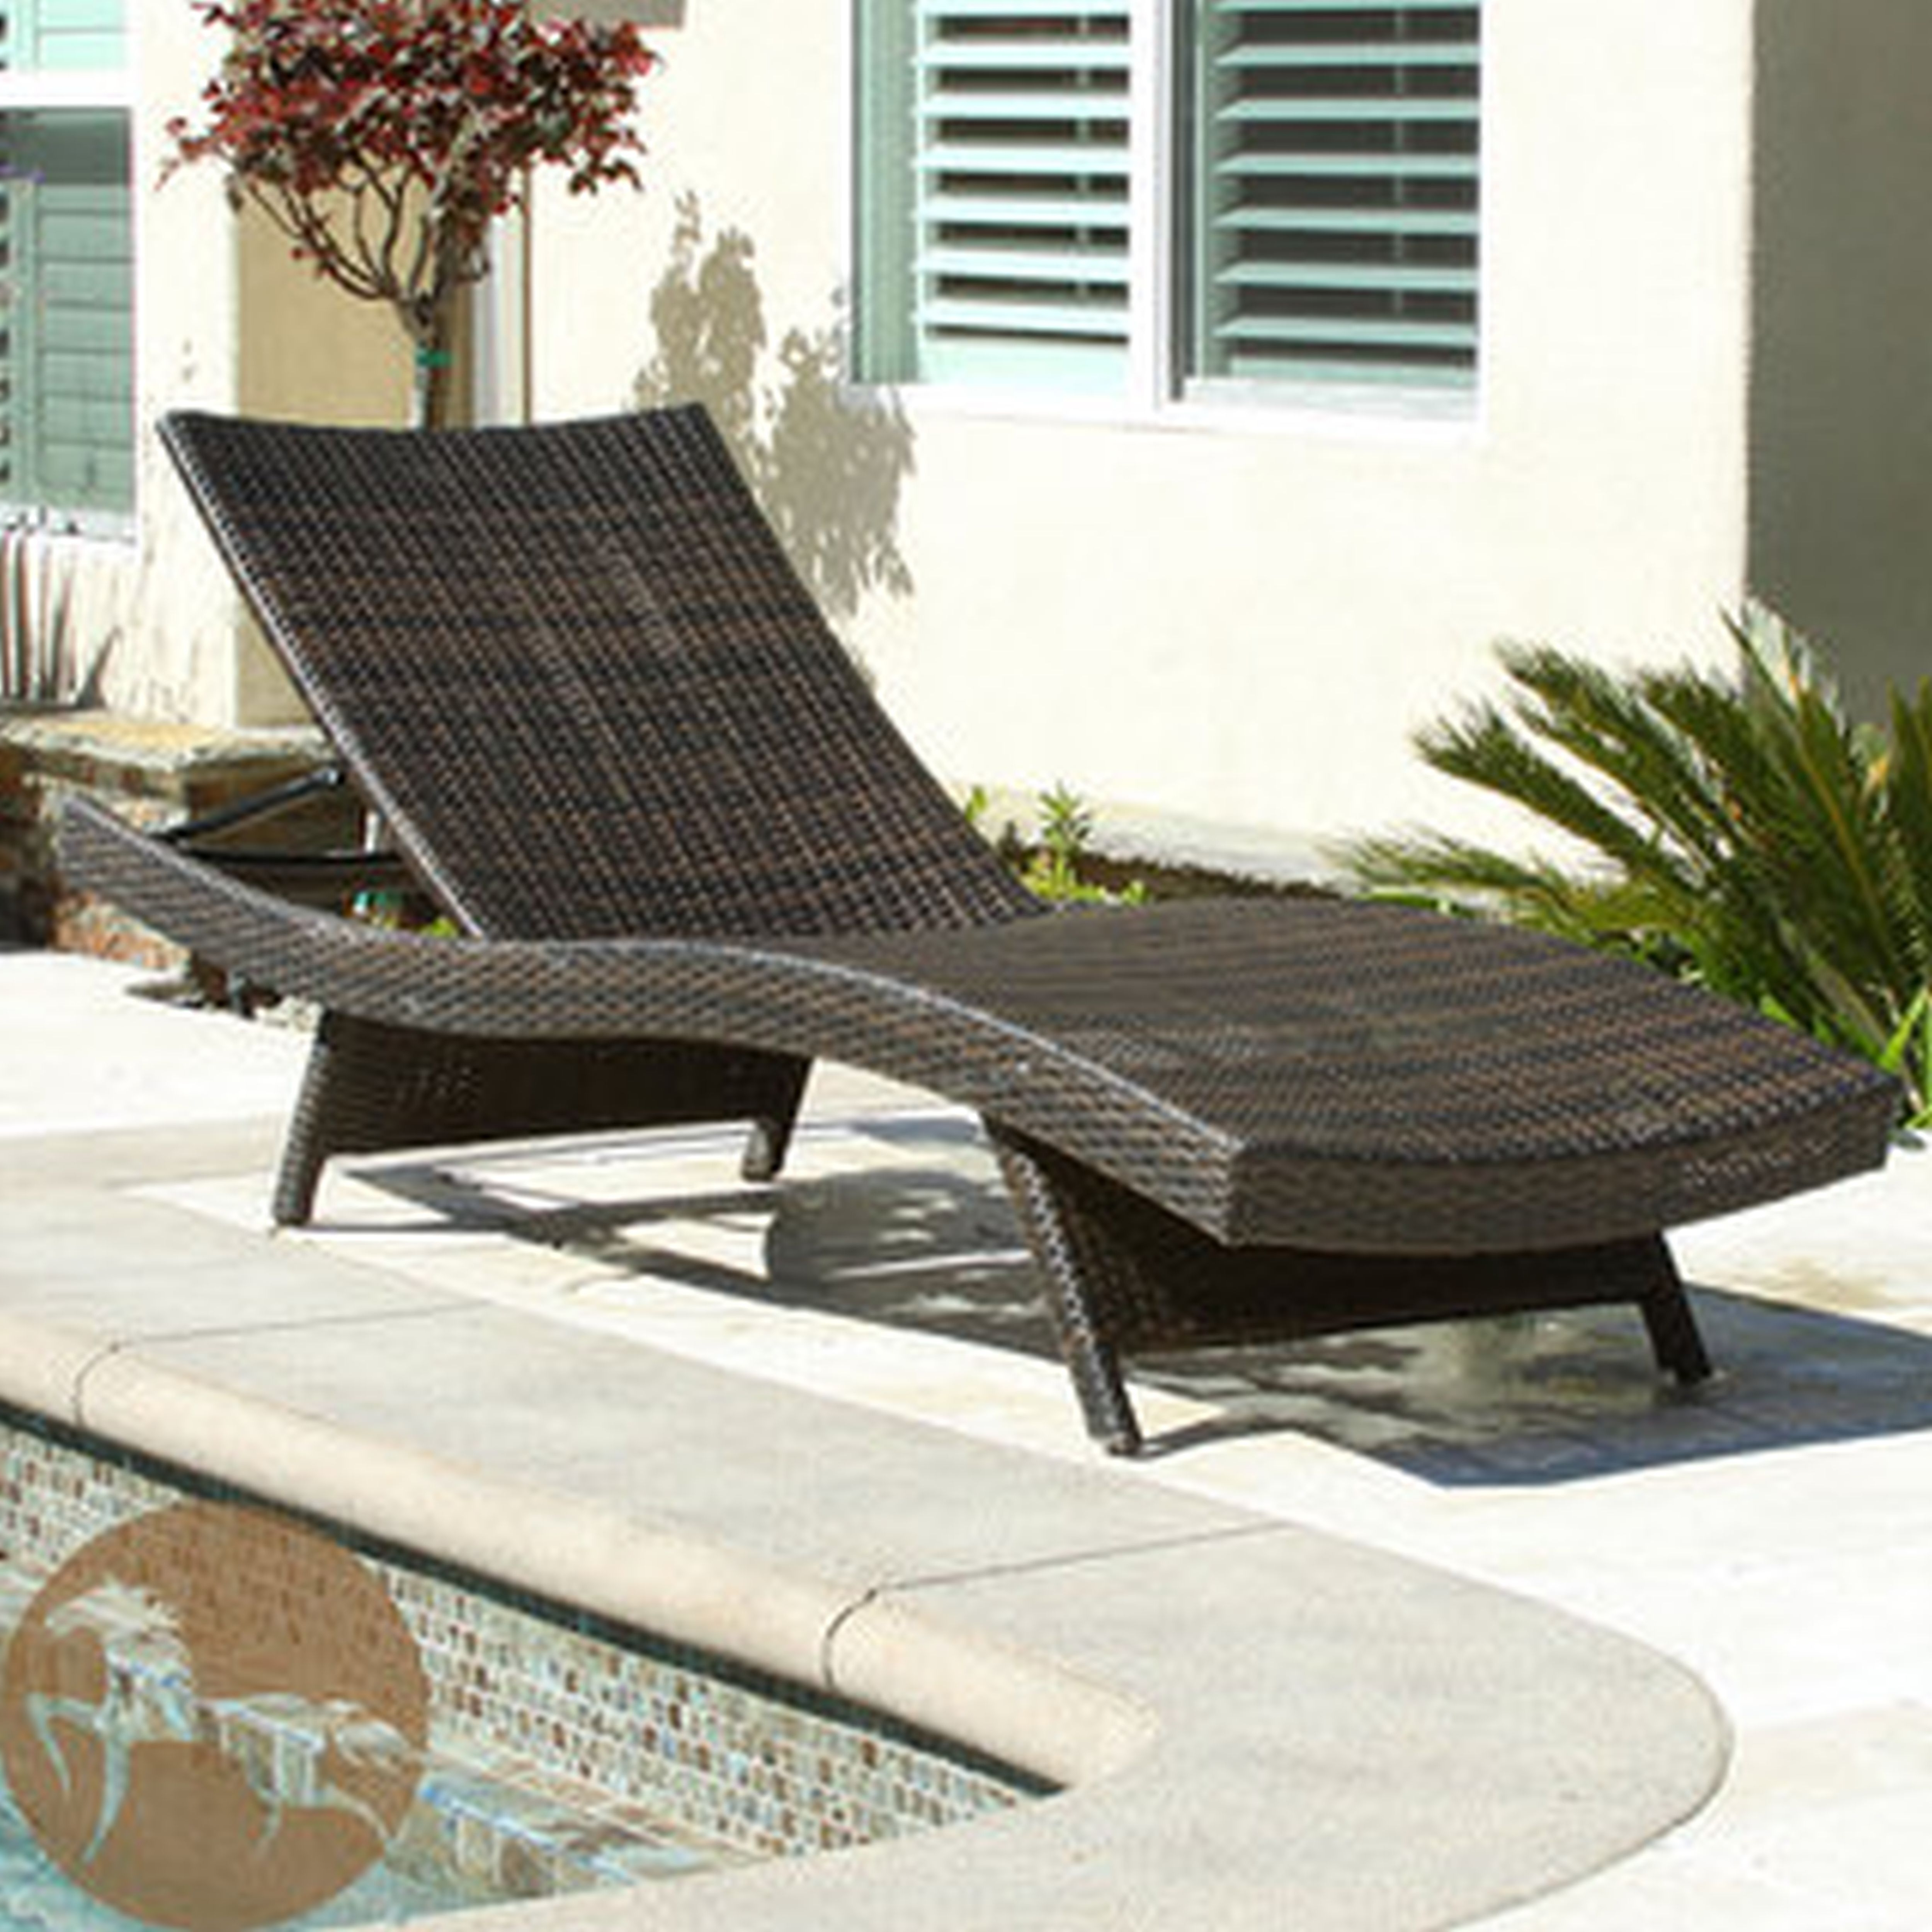 Most Recently Released Deck Chaise Lounge Chairs With Regard To Colorful Outdoor Chaise Lounge Chairs • Lounge Chairs Ideas (View 10 of 15)